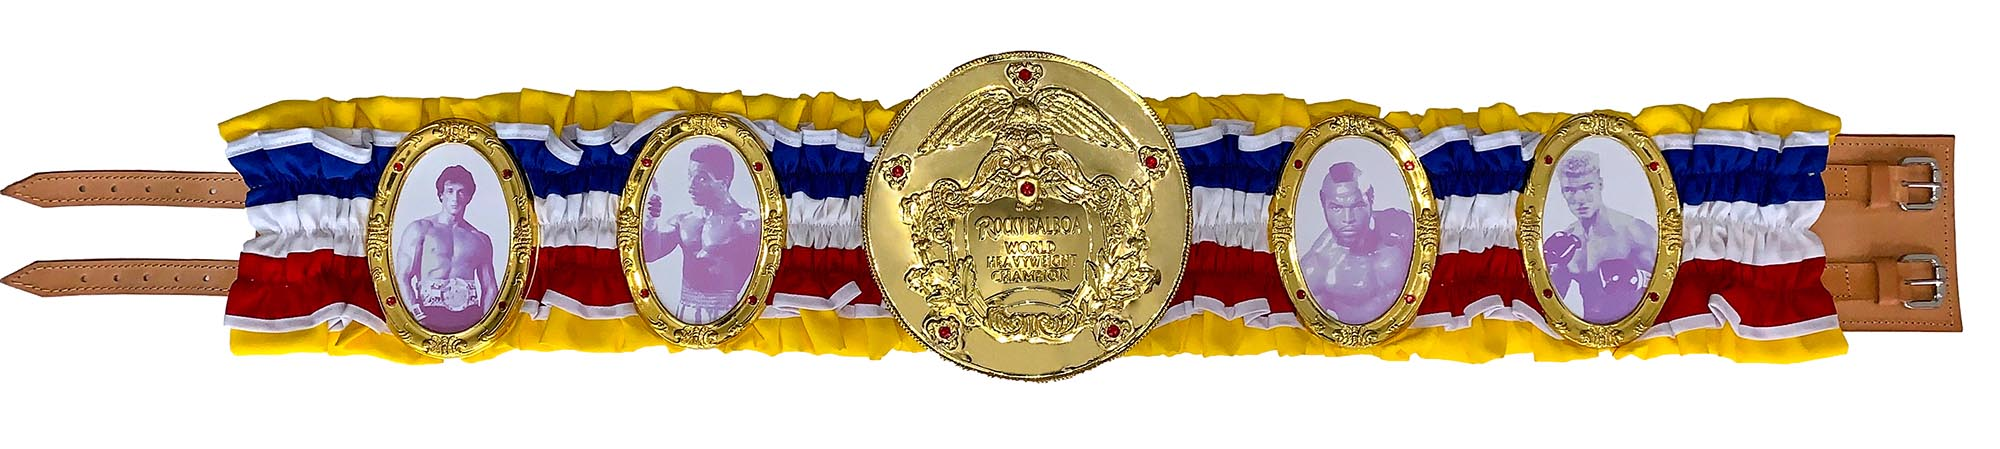 Rocky Balboa World Heavyweight Championship Belt